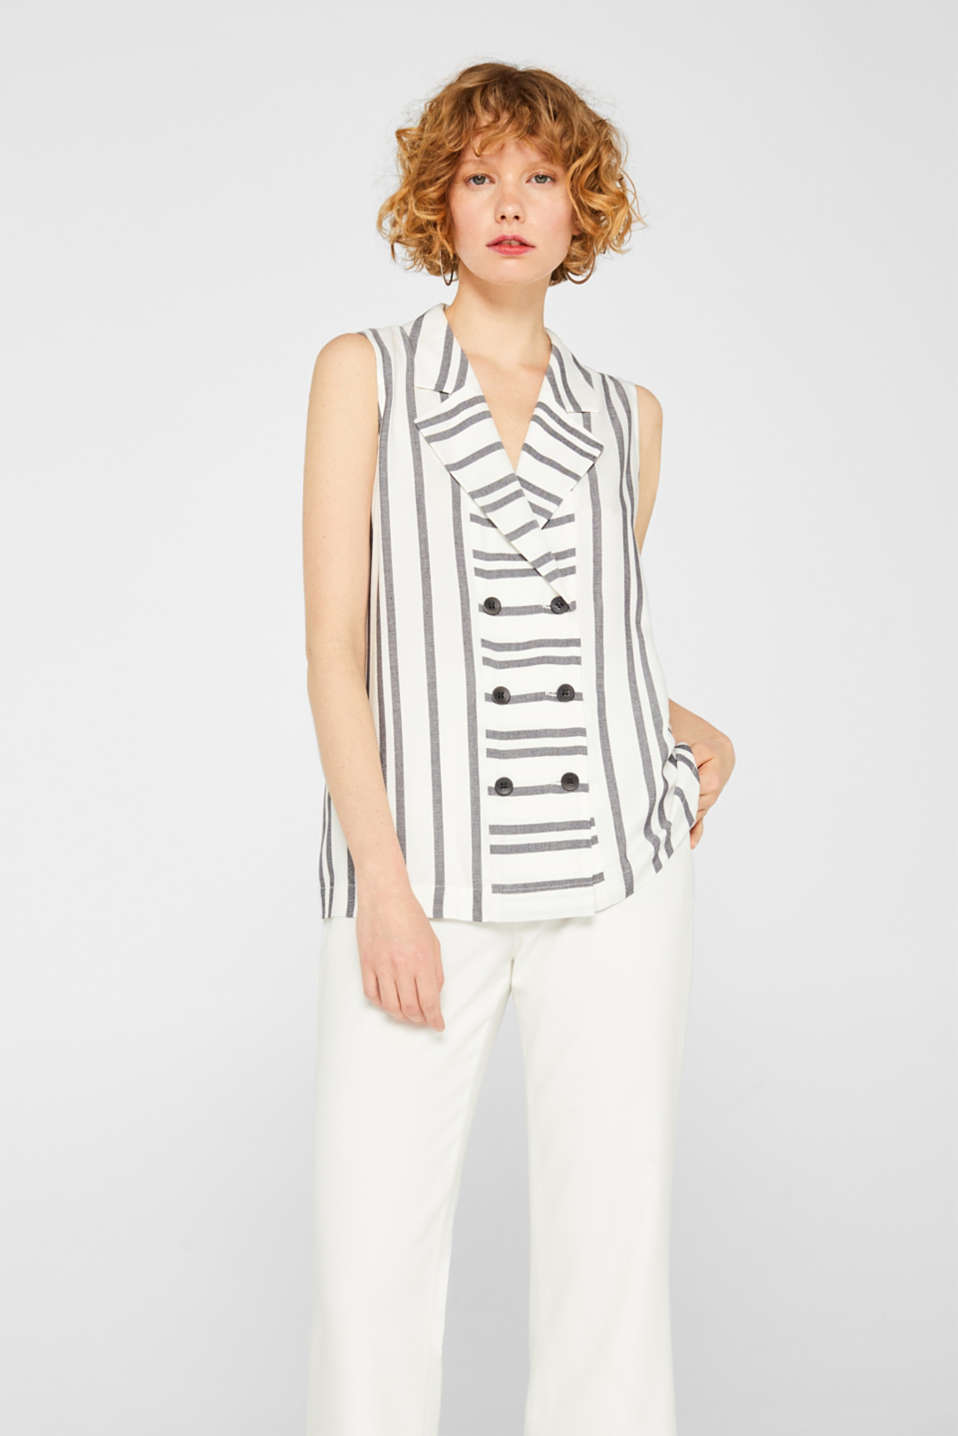 Double-breasted, waistcoat-style blouse top